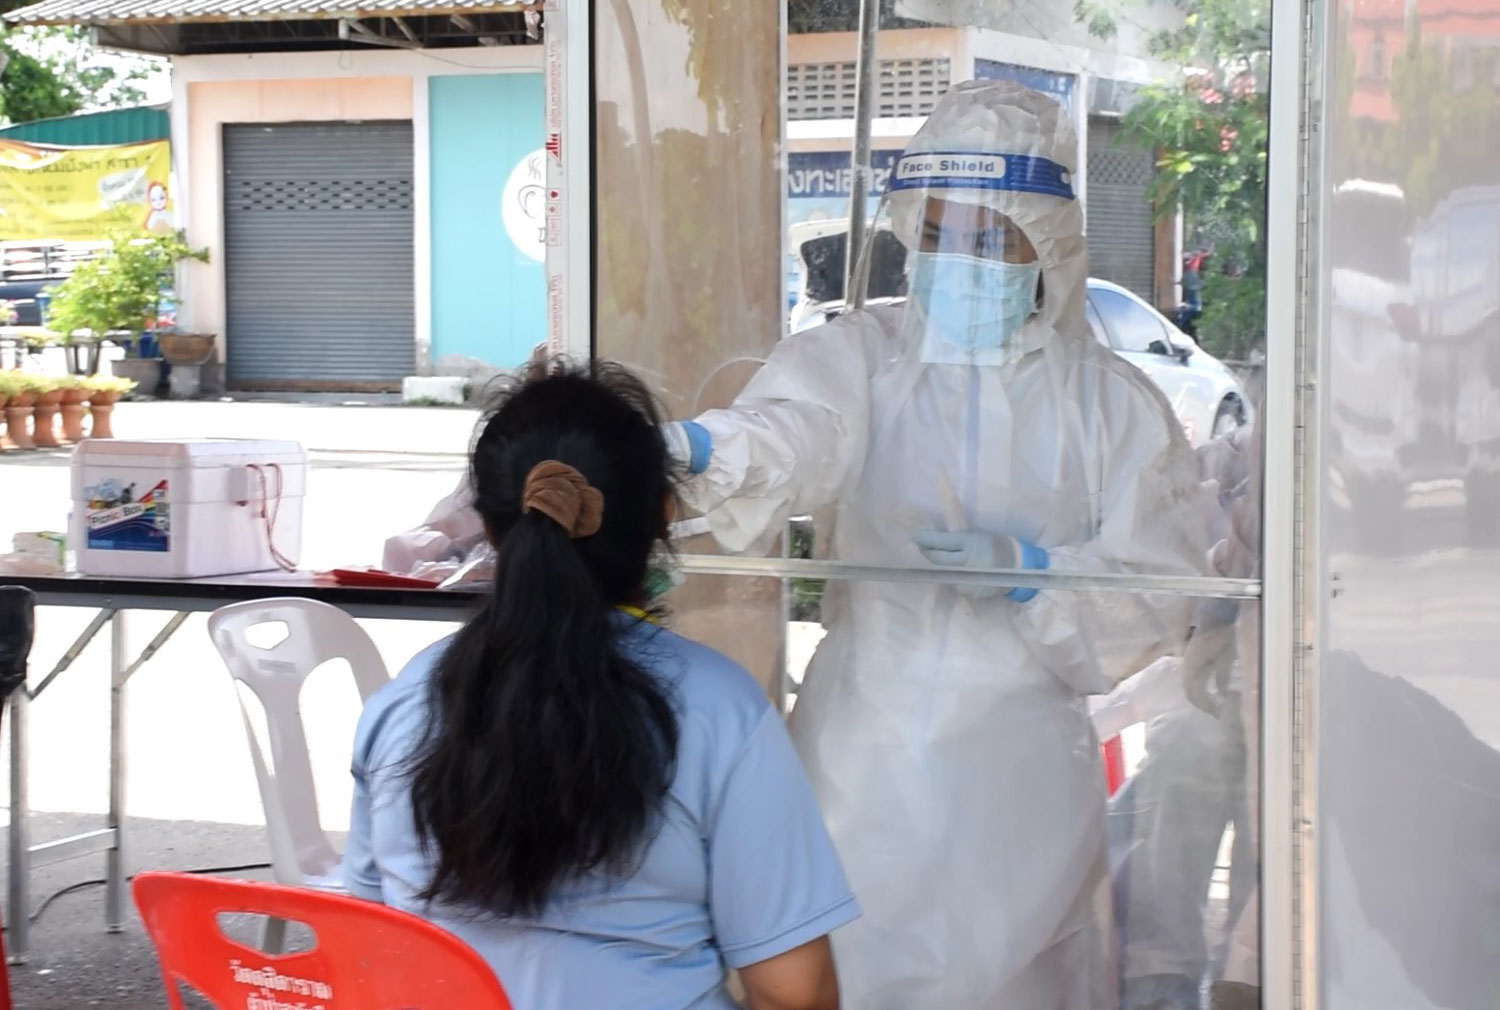 A health official collects a nasal swab from a woman in Ayutthaya province on Tuesday, when the central province reported 14 more Covid-19 cases. (Photo: Sunthon Pongpao)